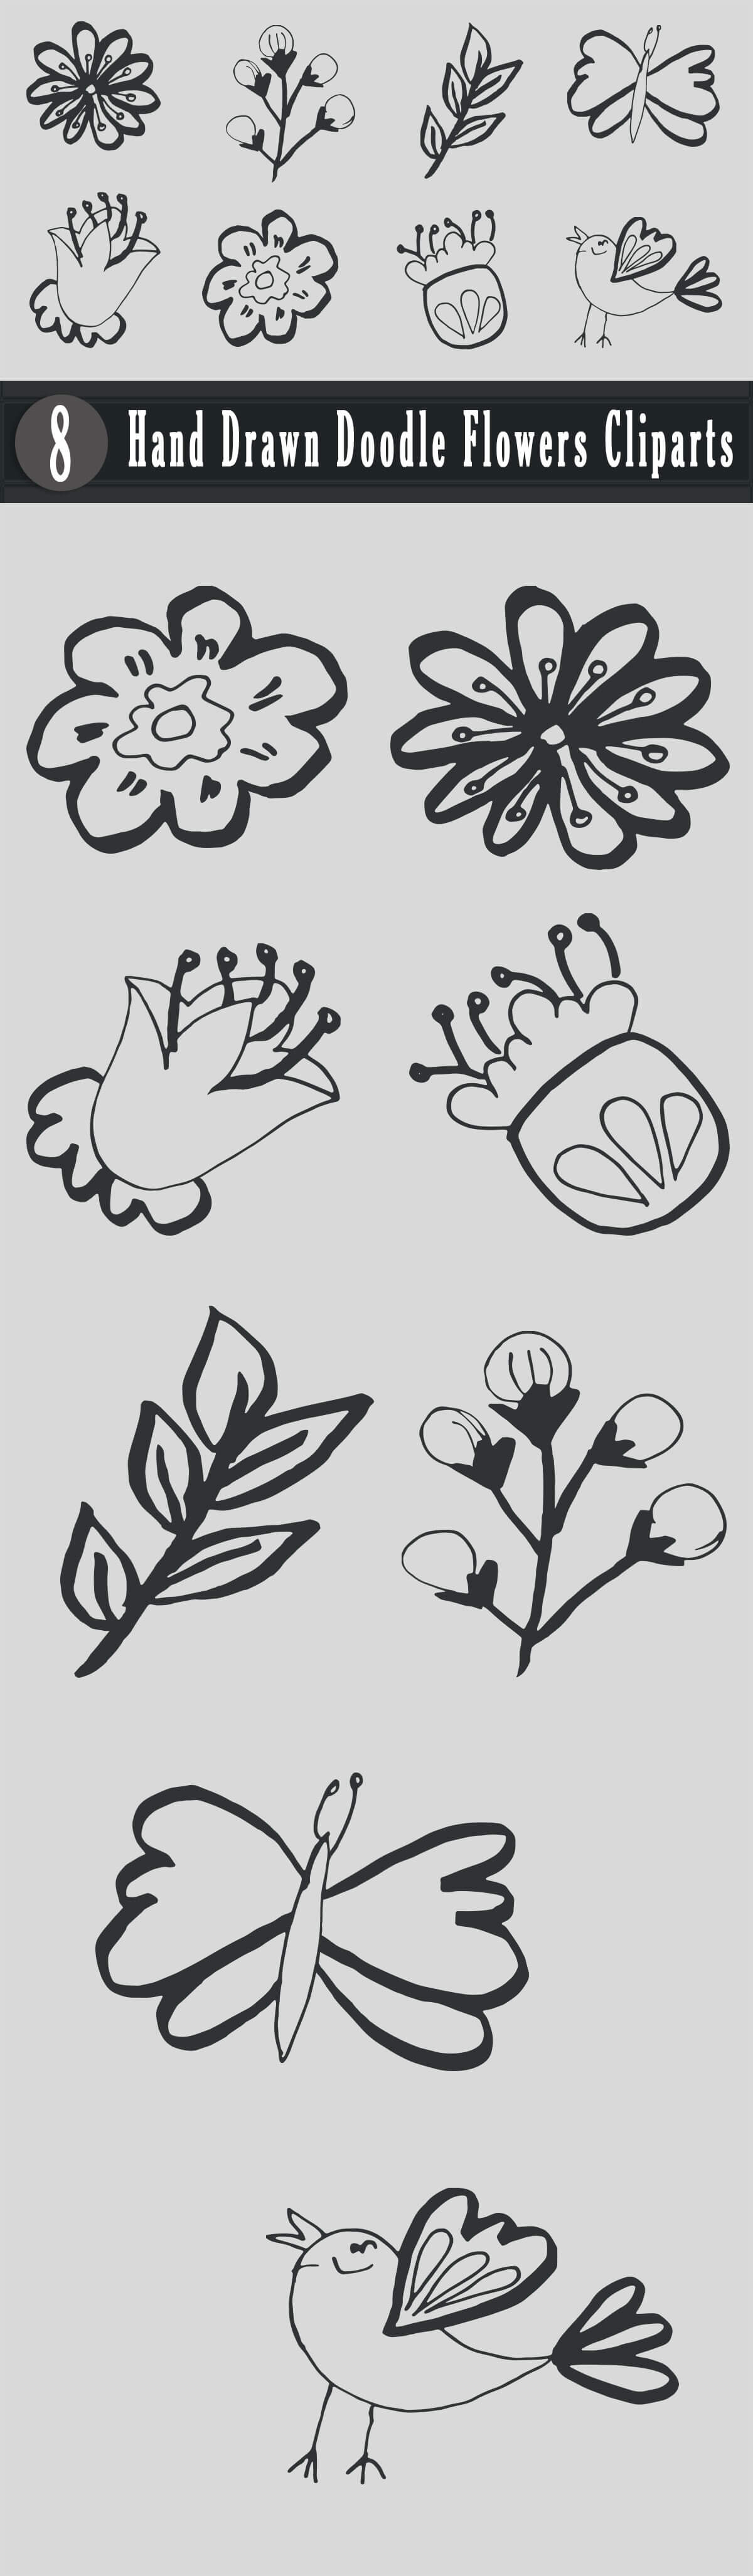 Free Handmade Doodle Flowers Cliparts